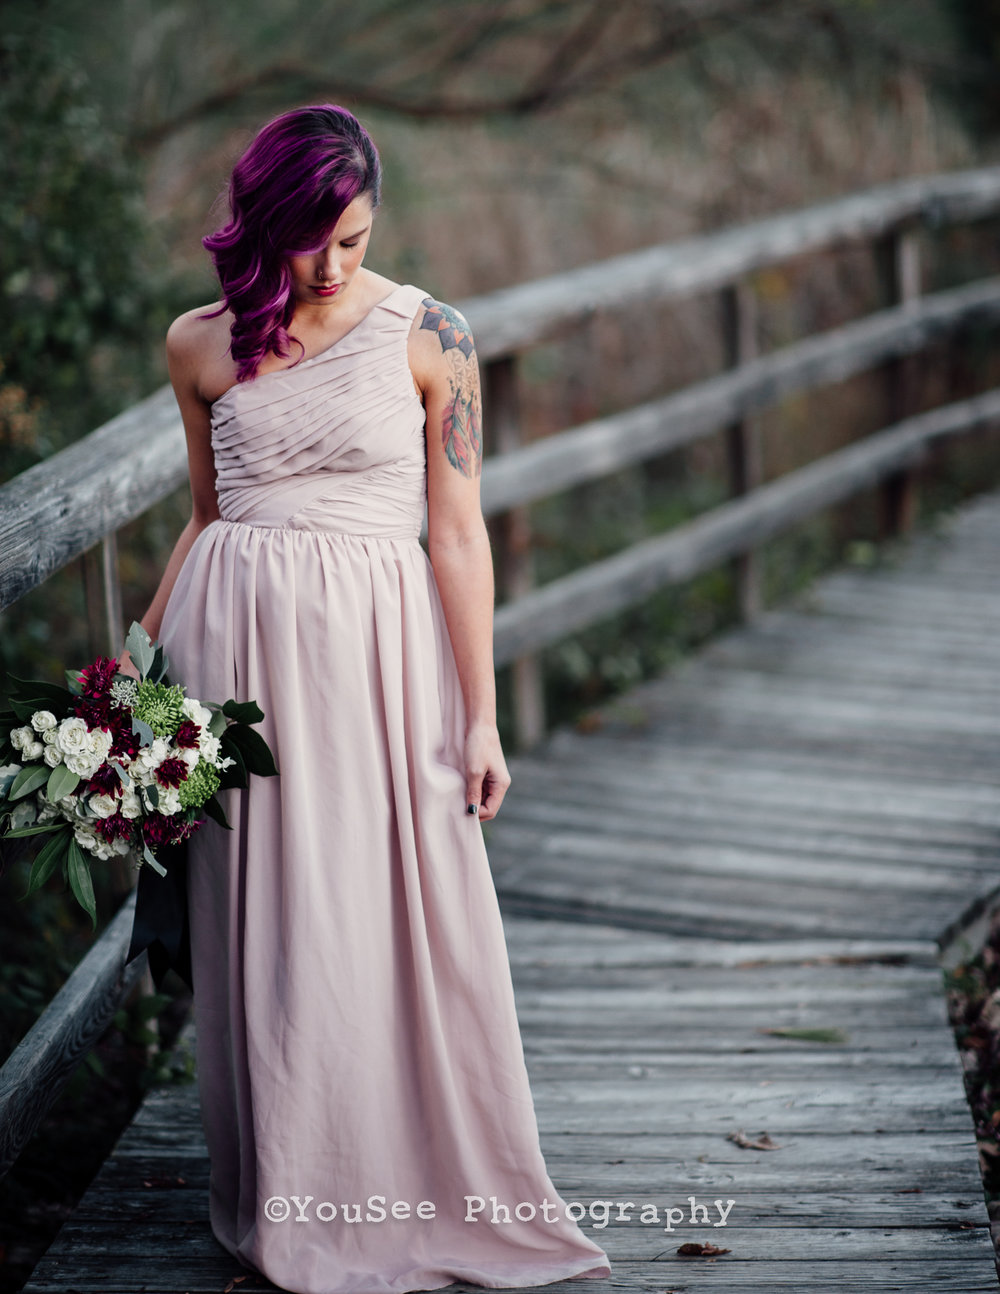 wedding_styledshoot_gothic_pursuit (69)